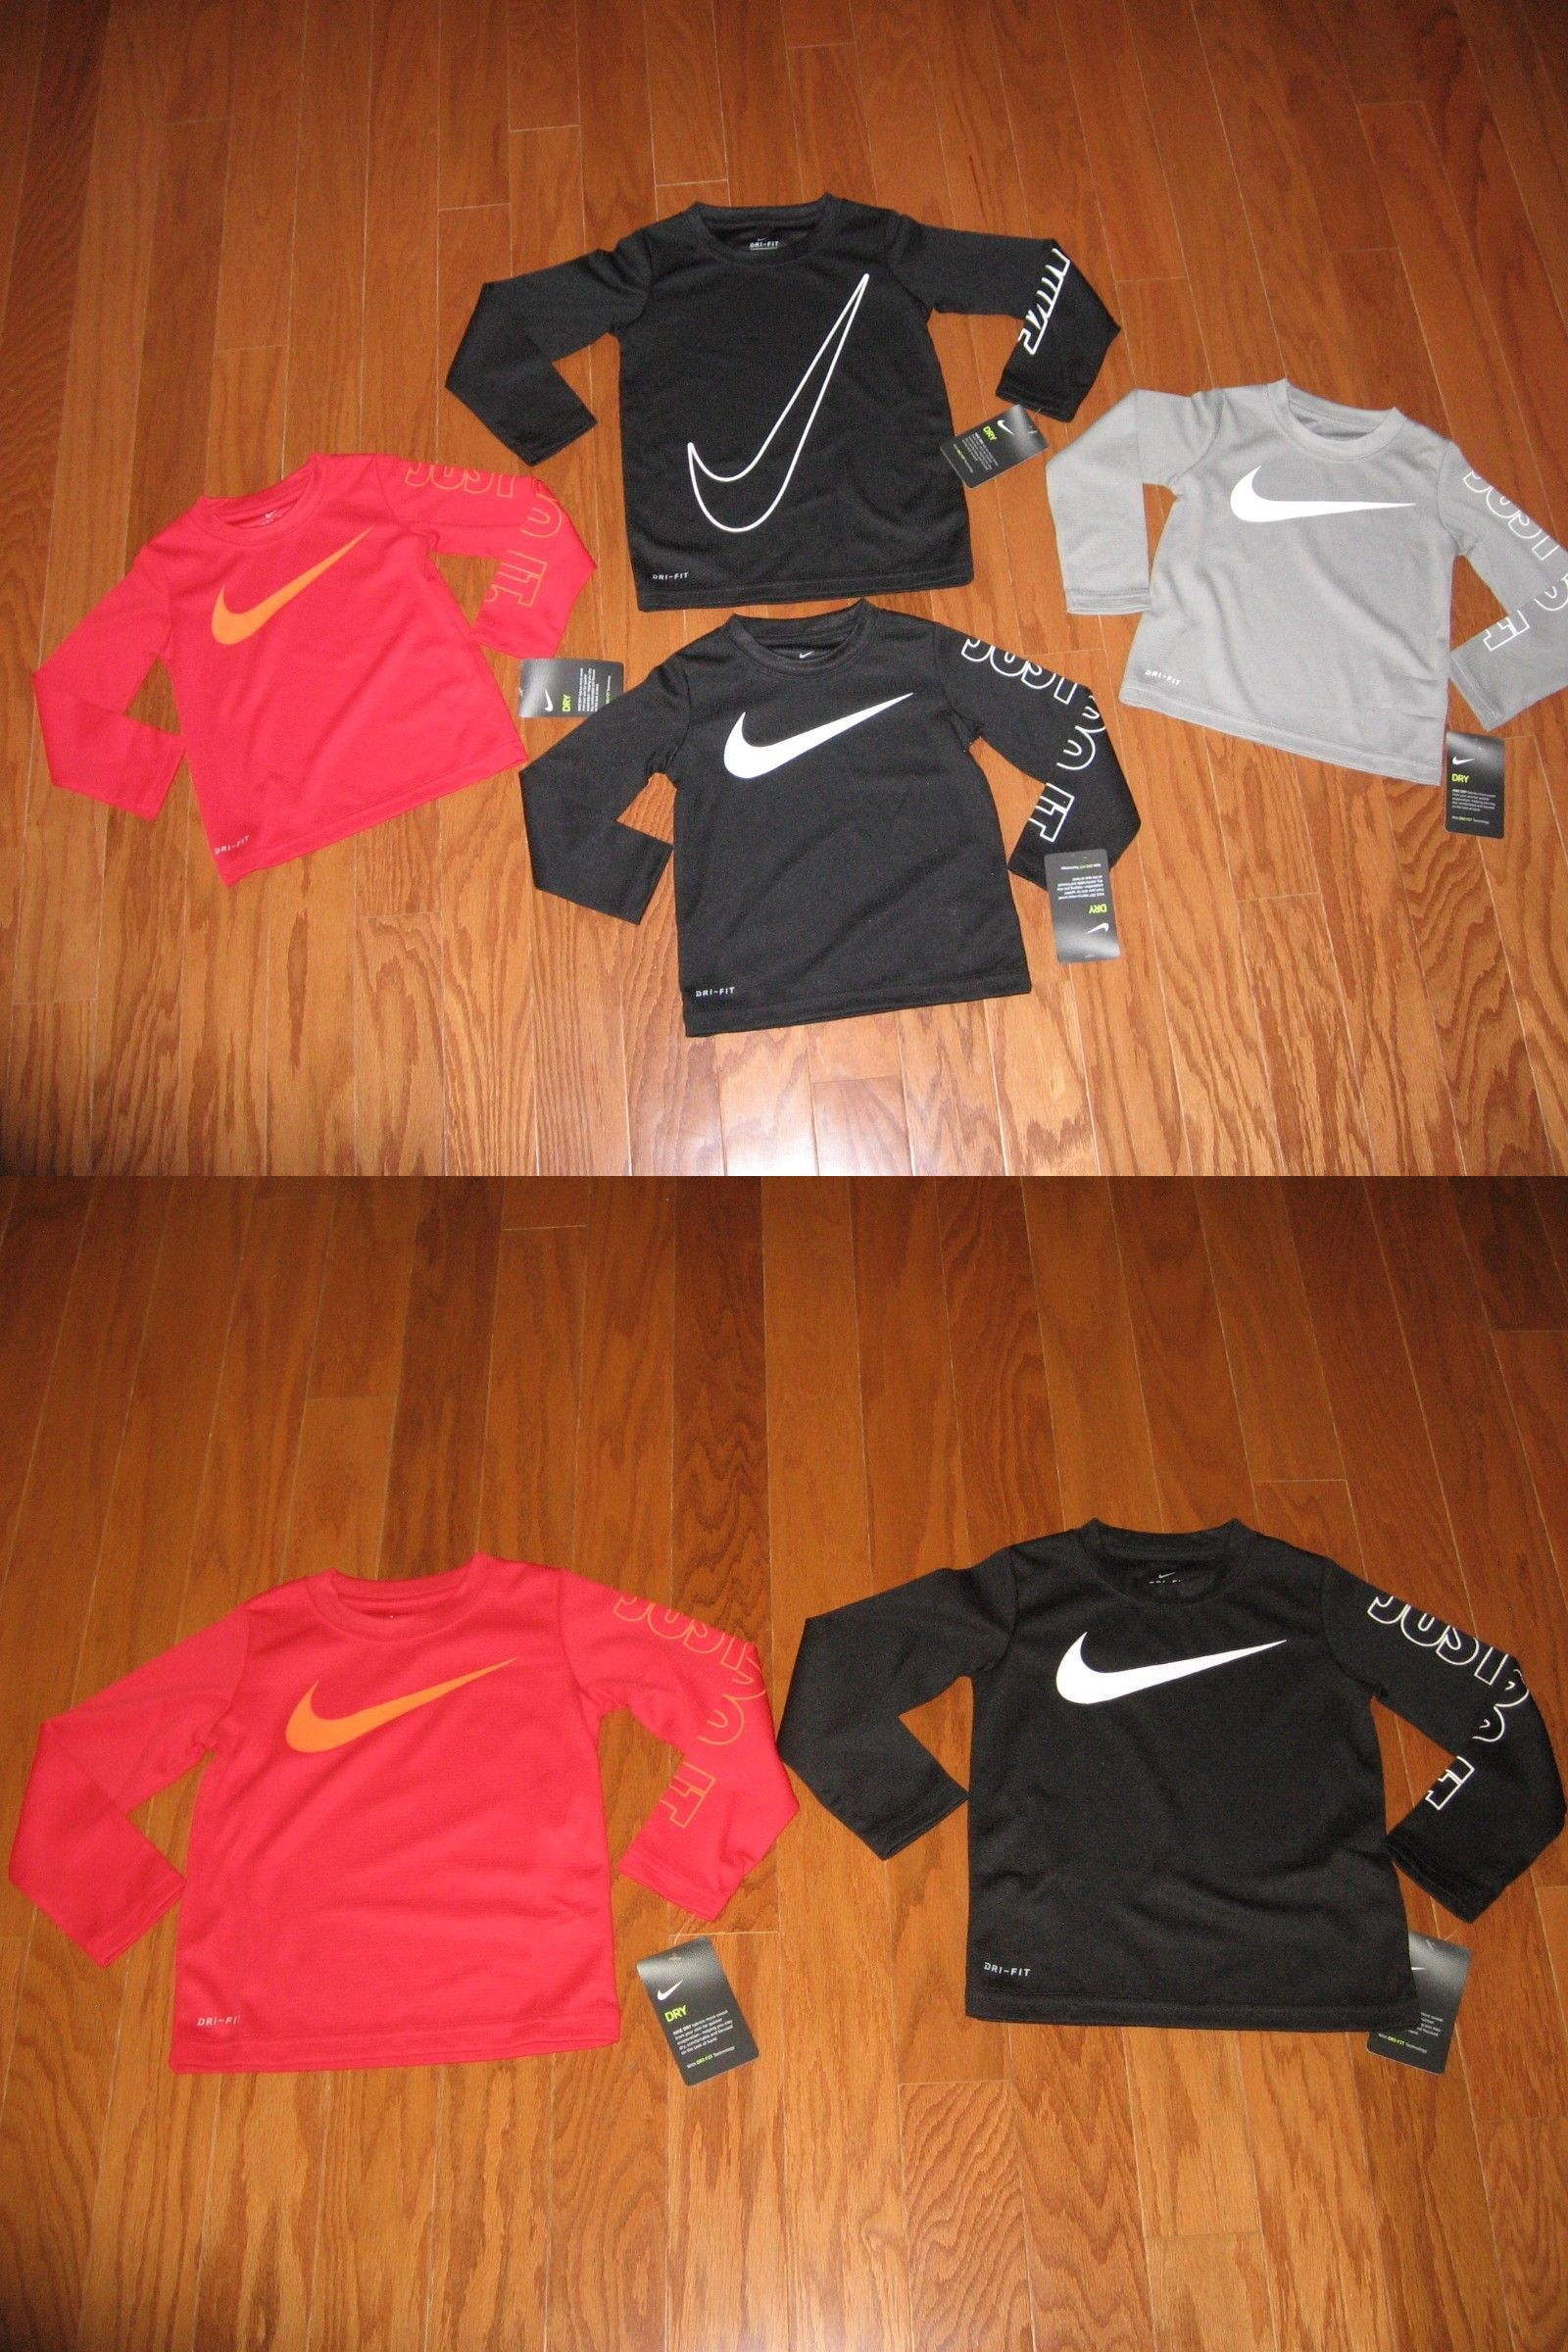 acde6a9ac9 Boys Clothing Newborn-5T 147317: Nike Long Sleeve T-Shirt Boys Size 2T 3T  4T Nwt -> BUY IT NOW ONLY: $19.99 on #eBay #clothing #sleeve